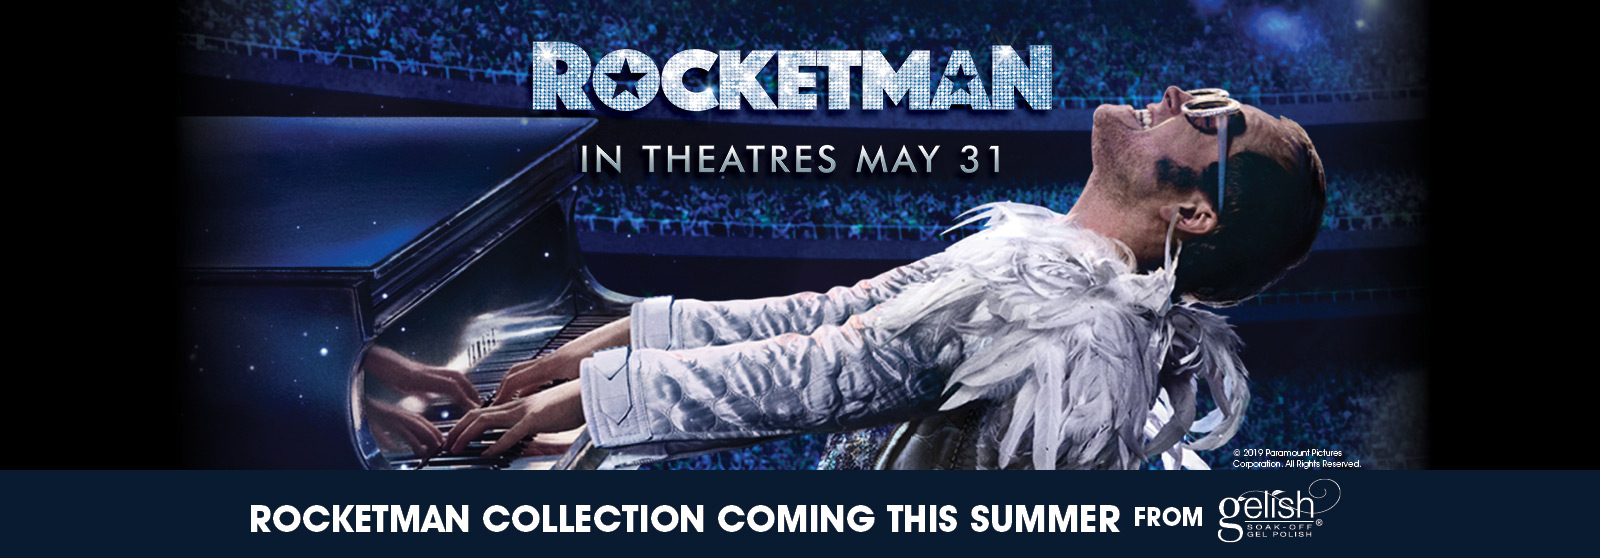 Rocketman - Collection Summer 2019